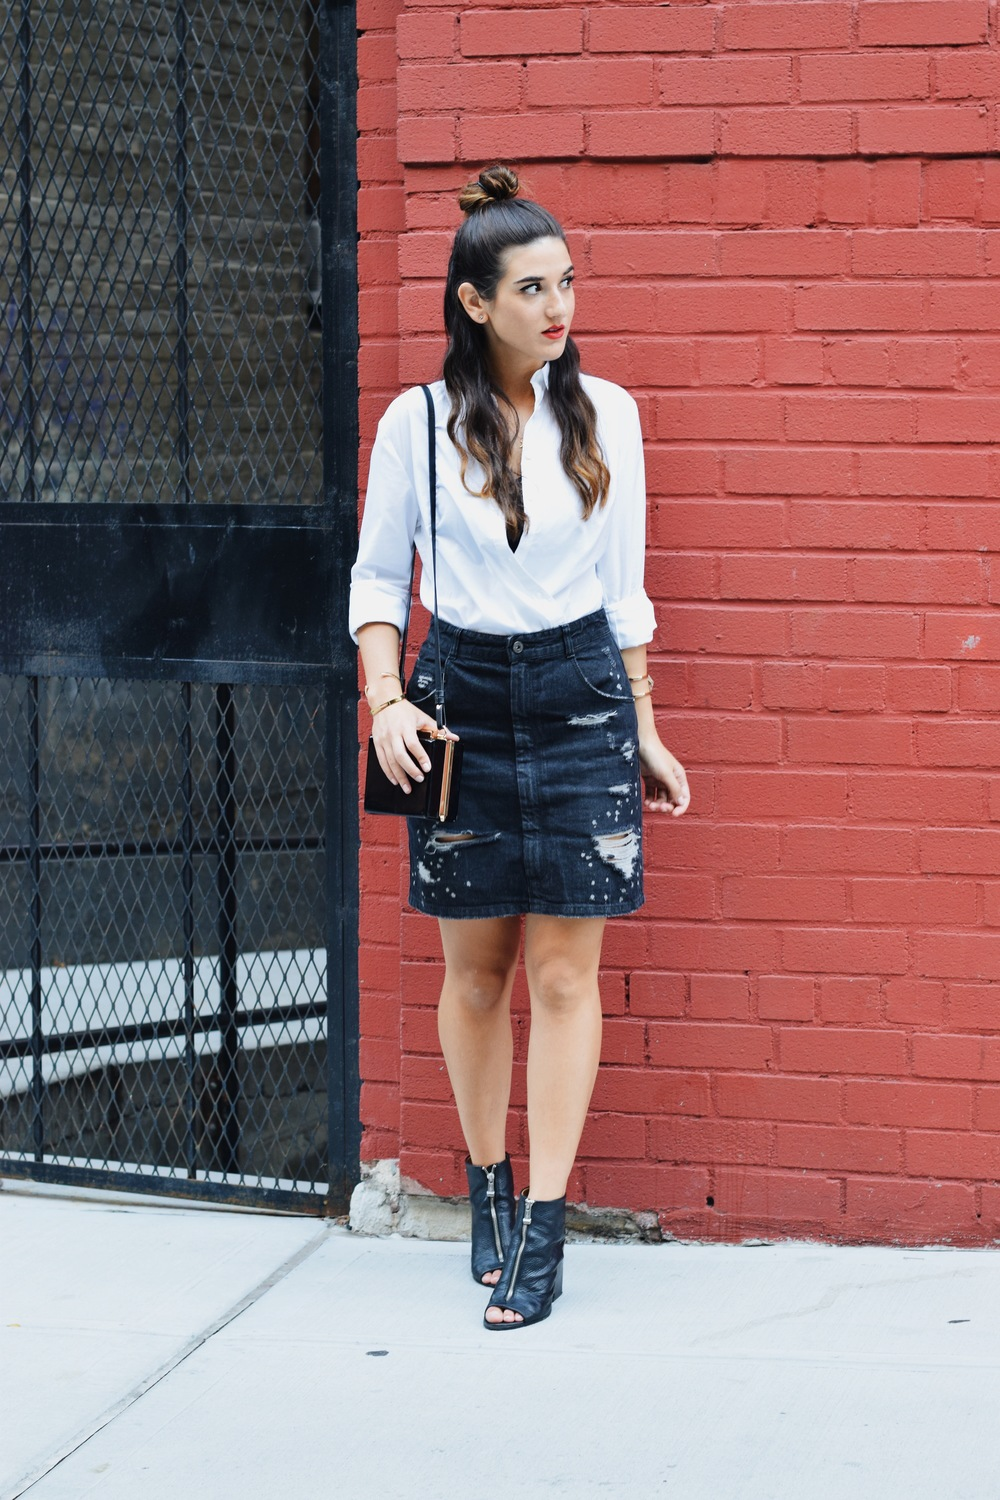 Coco & Marie Moon Necklace Giveaway Louboutins & Love Fashion Blog Esther Santer NYC Street Style Blogger Lifestyle Topknot Bun Denim Ripped Jean Skirt White Button Down Zara Black Box Clutch Bag Nordstrom Booties Bralette Girl Women Hair Gold Jewelry.JPG